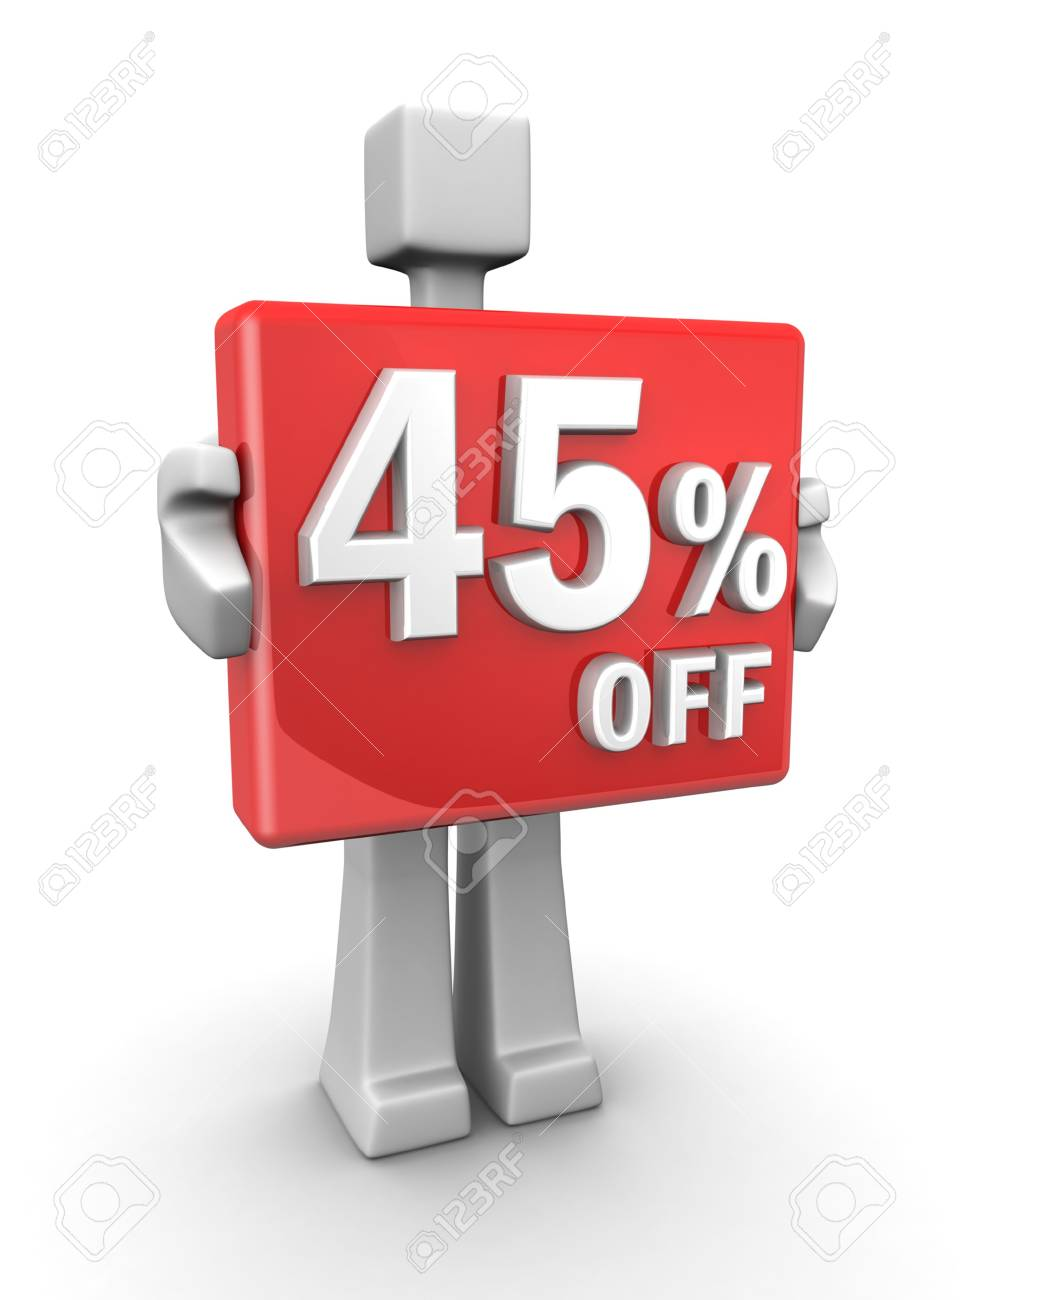 Sales concept a man showing 45 percent off signboard 3d illustration Stock Photo - 5543654